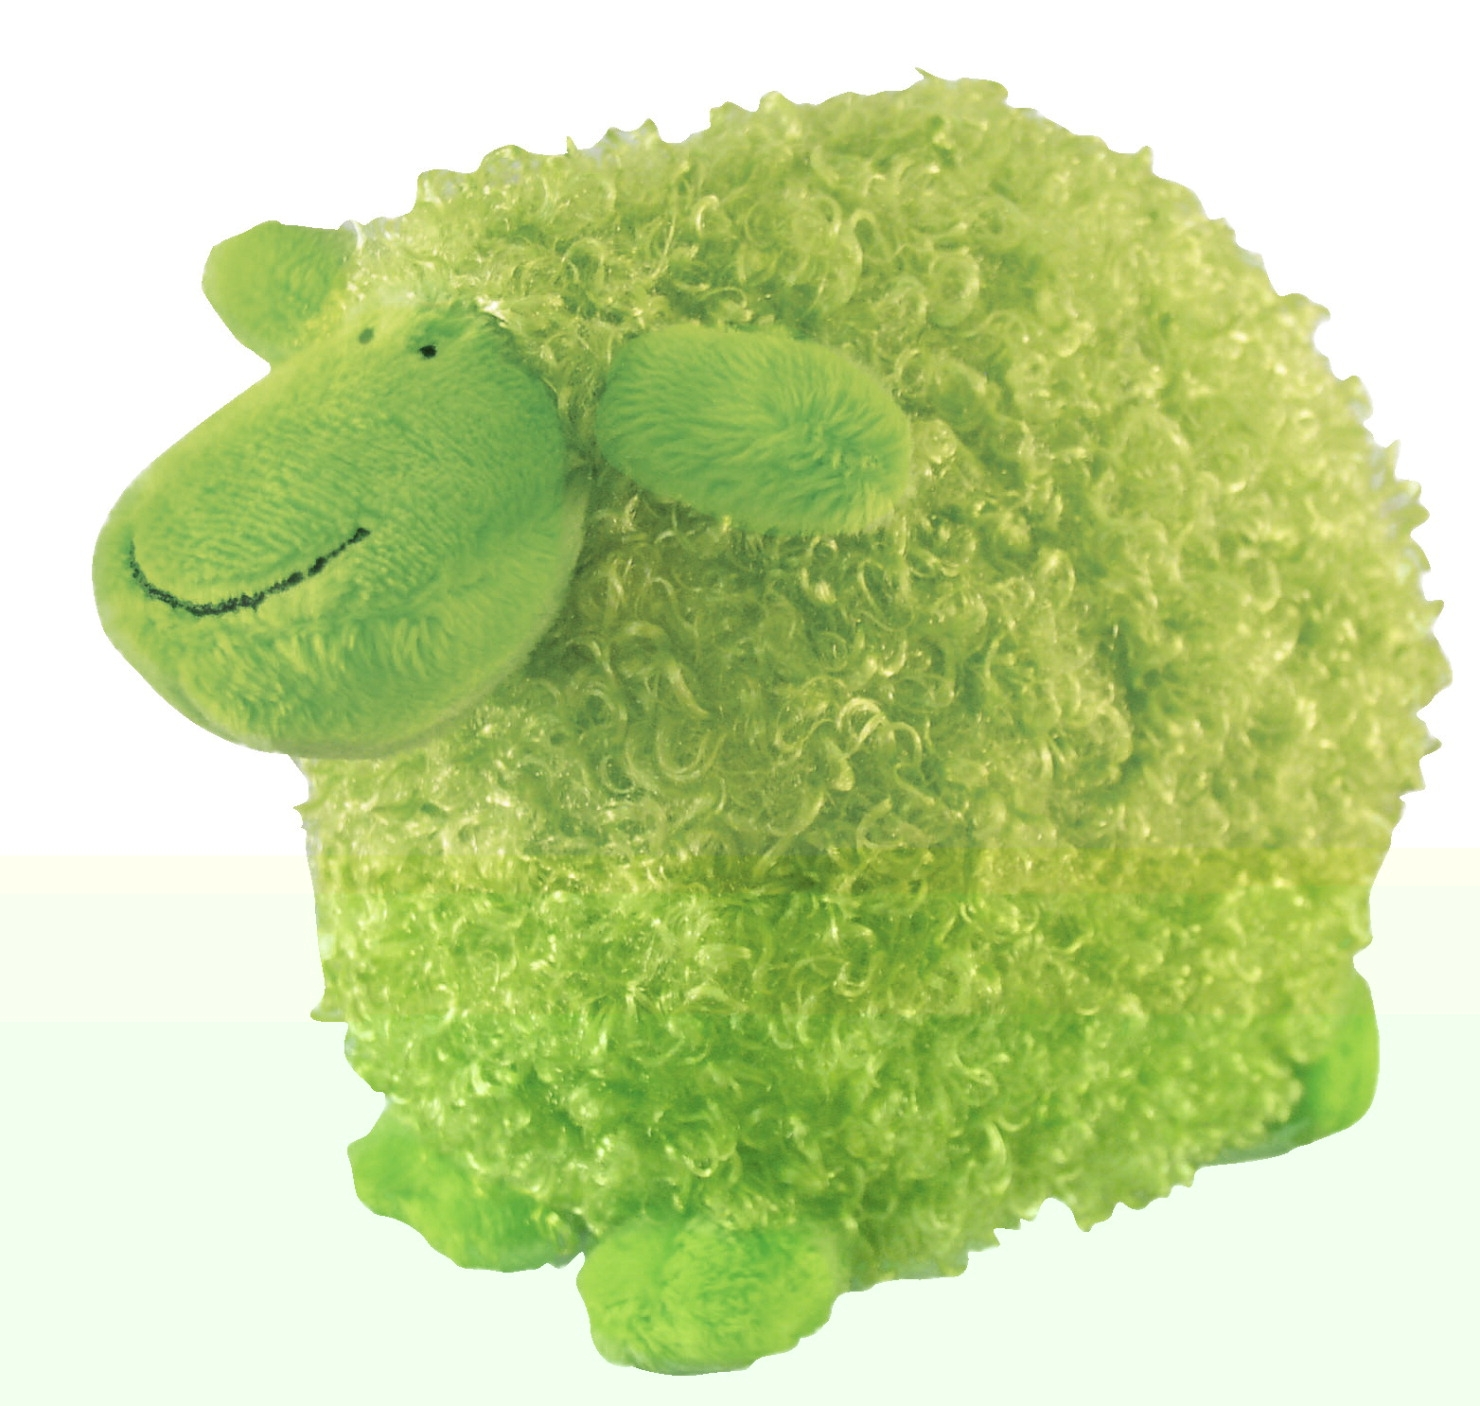 Merrymakers Green Sheep Doll - 1433075 - Games Games Books 1433075